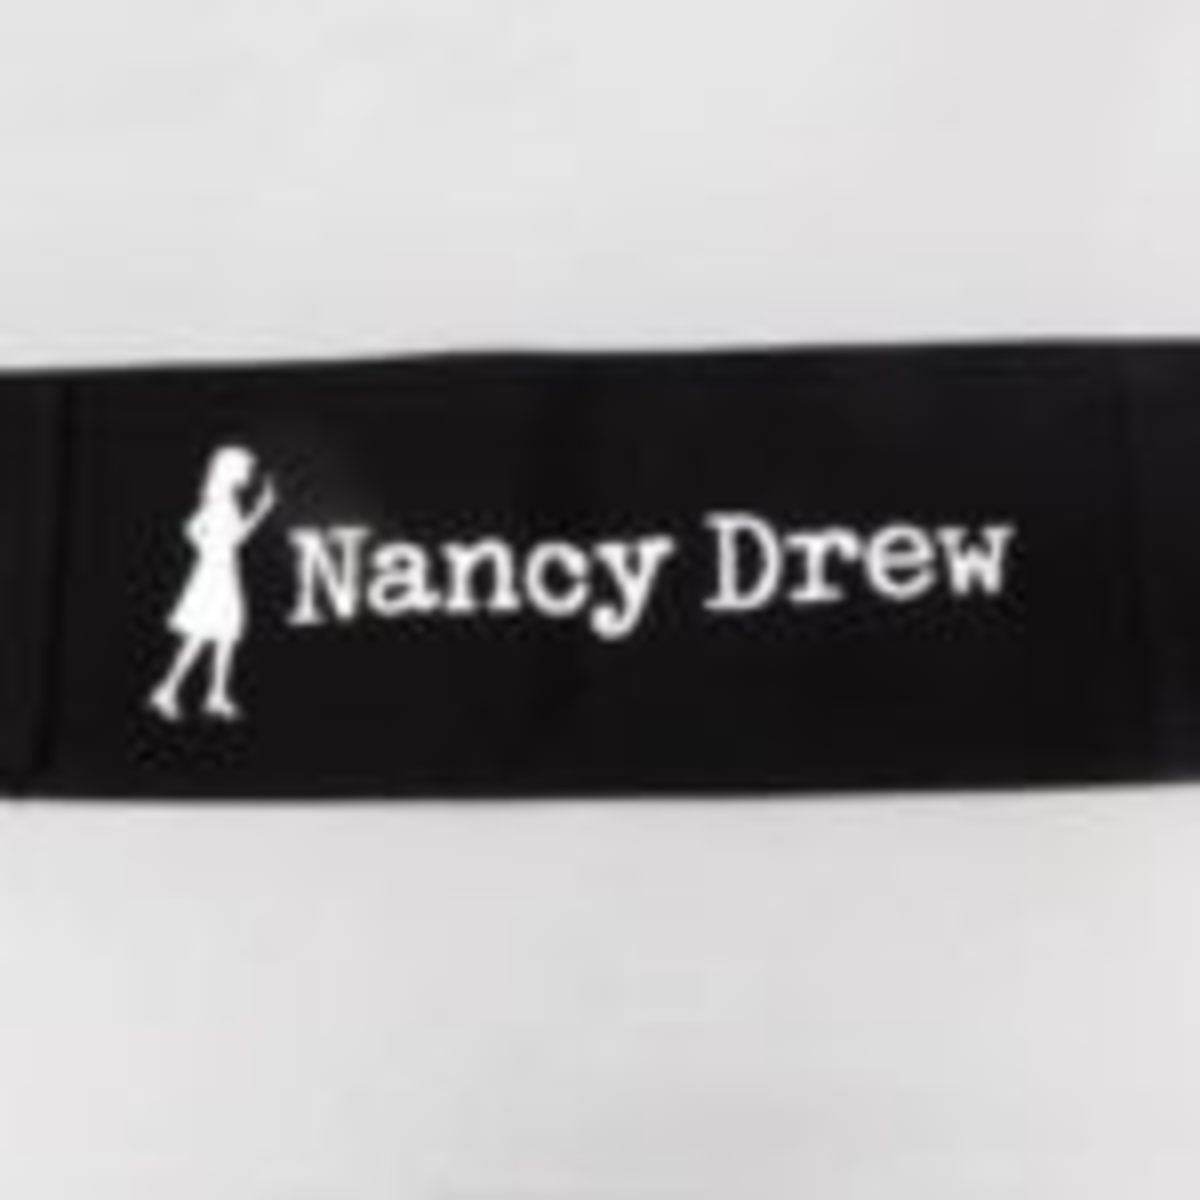 2007 Nancy Drew movie - director's chair back. All images courtesy Jennifer Fisher